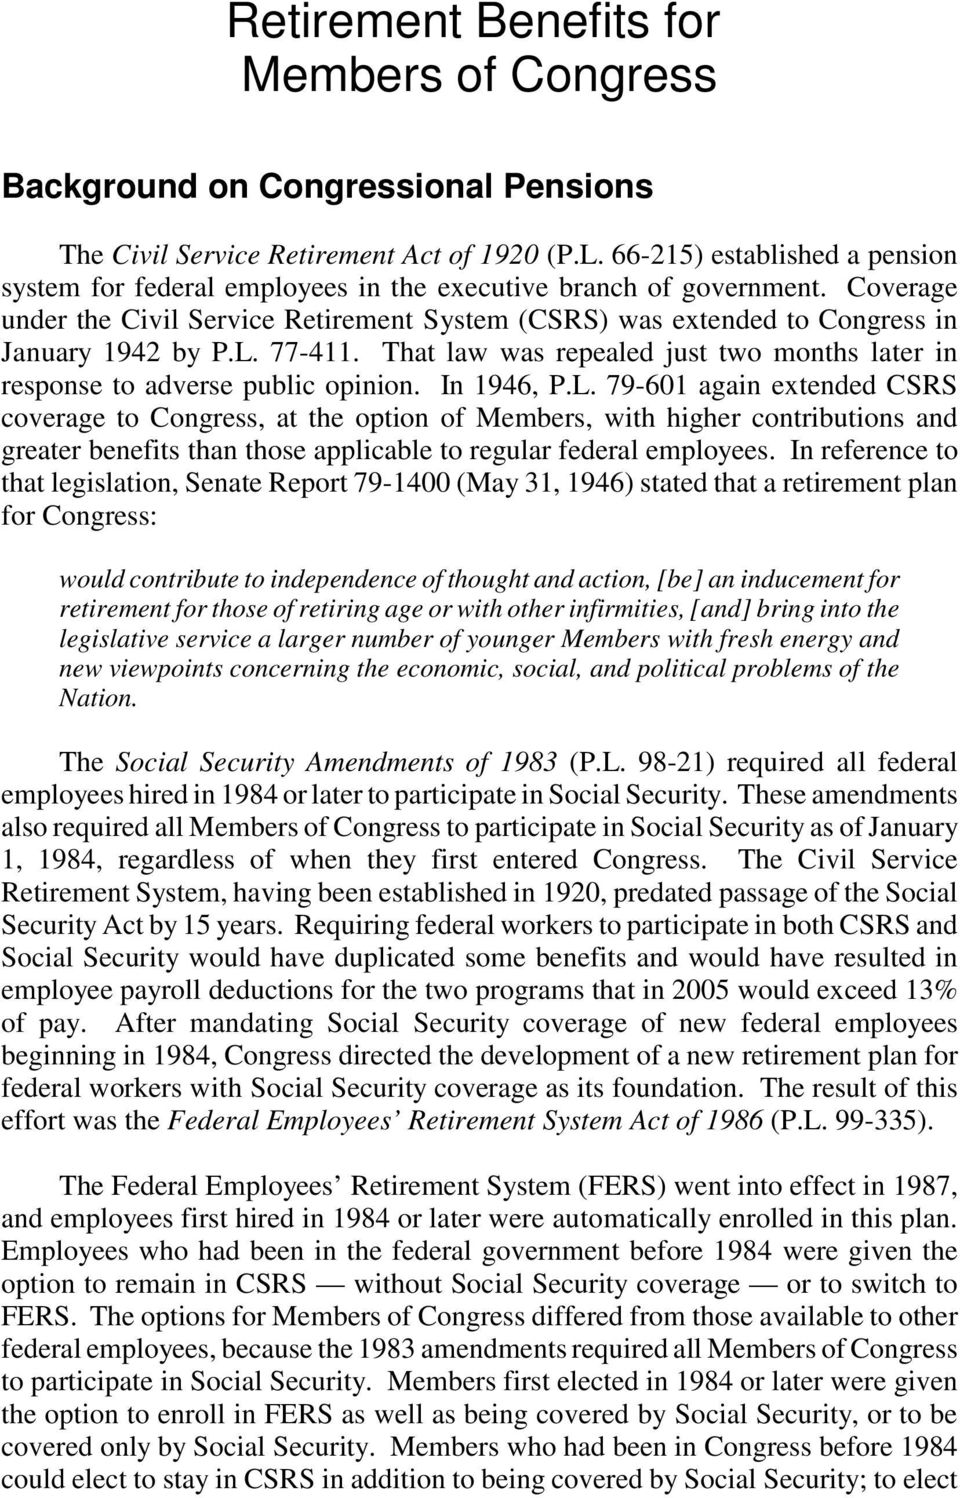 Coverage under the Civil Service Retirement System (CSRS) was extended to Congress in January 1942 by P.L. 77-411. That law was repealed just two months later in response to adverse public opinion.